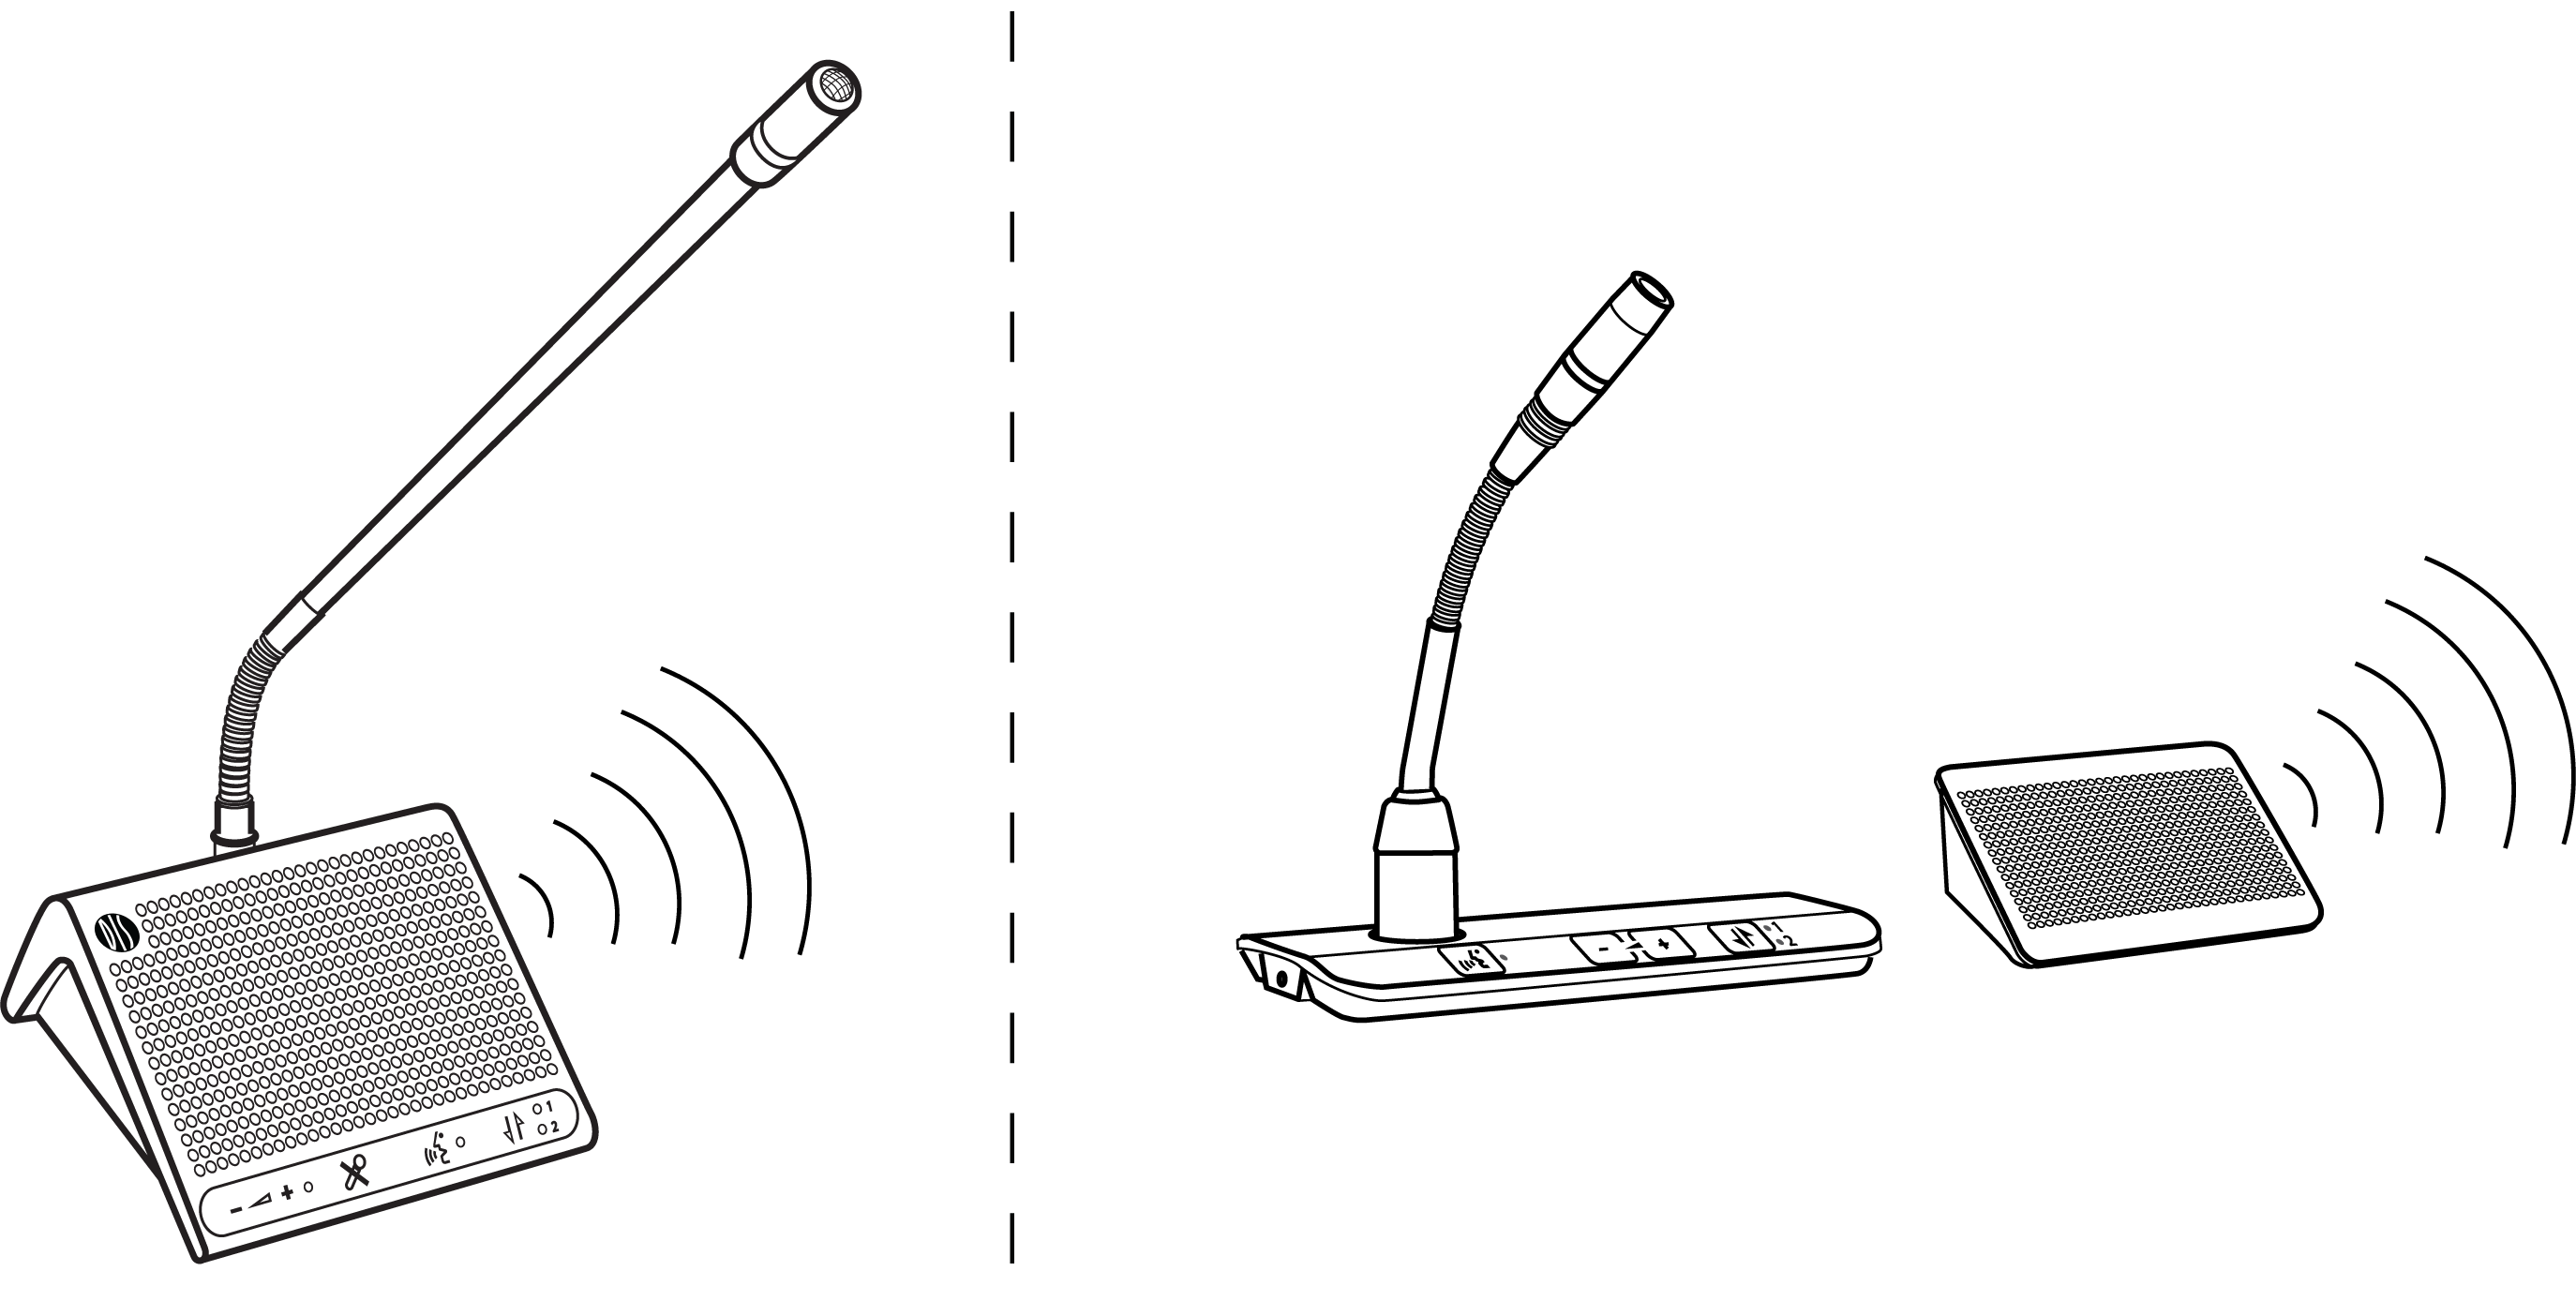 Illustration showing loudspeakers on portable and flush-mount discussion units